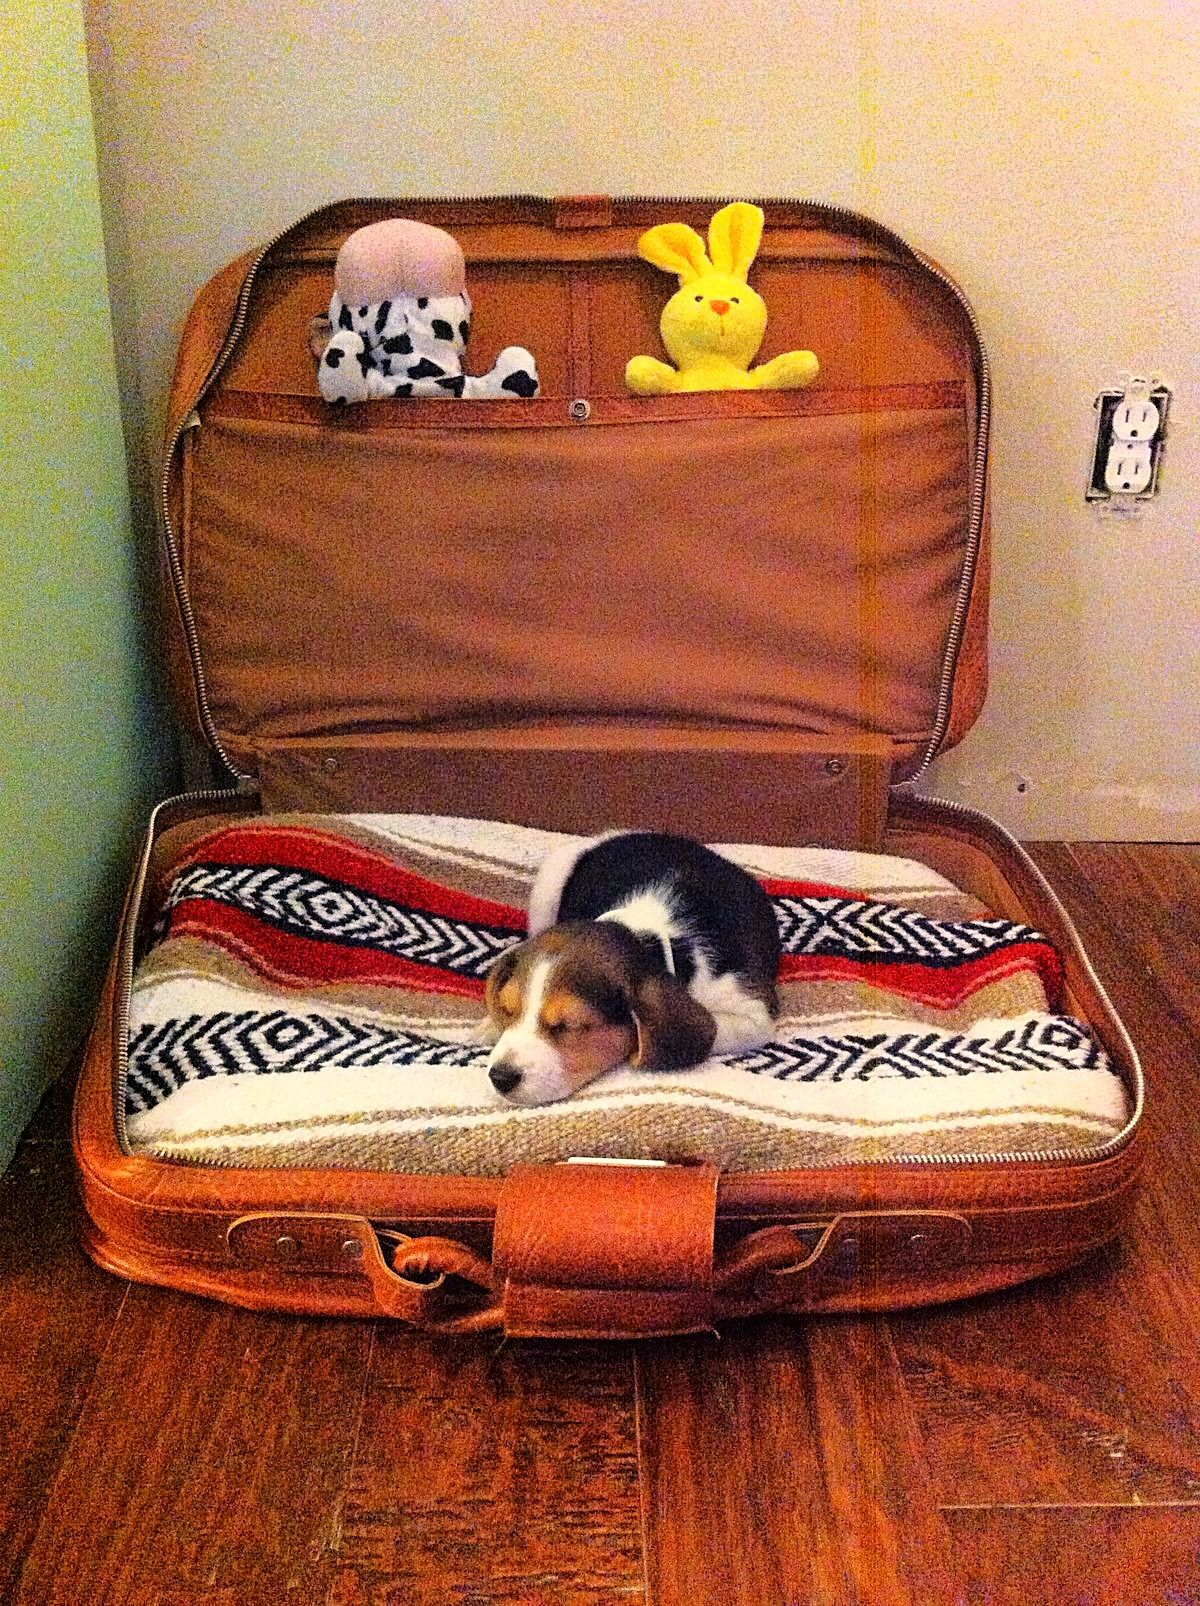 travel dog bed put all your dogs toys, food, dishes etc